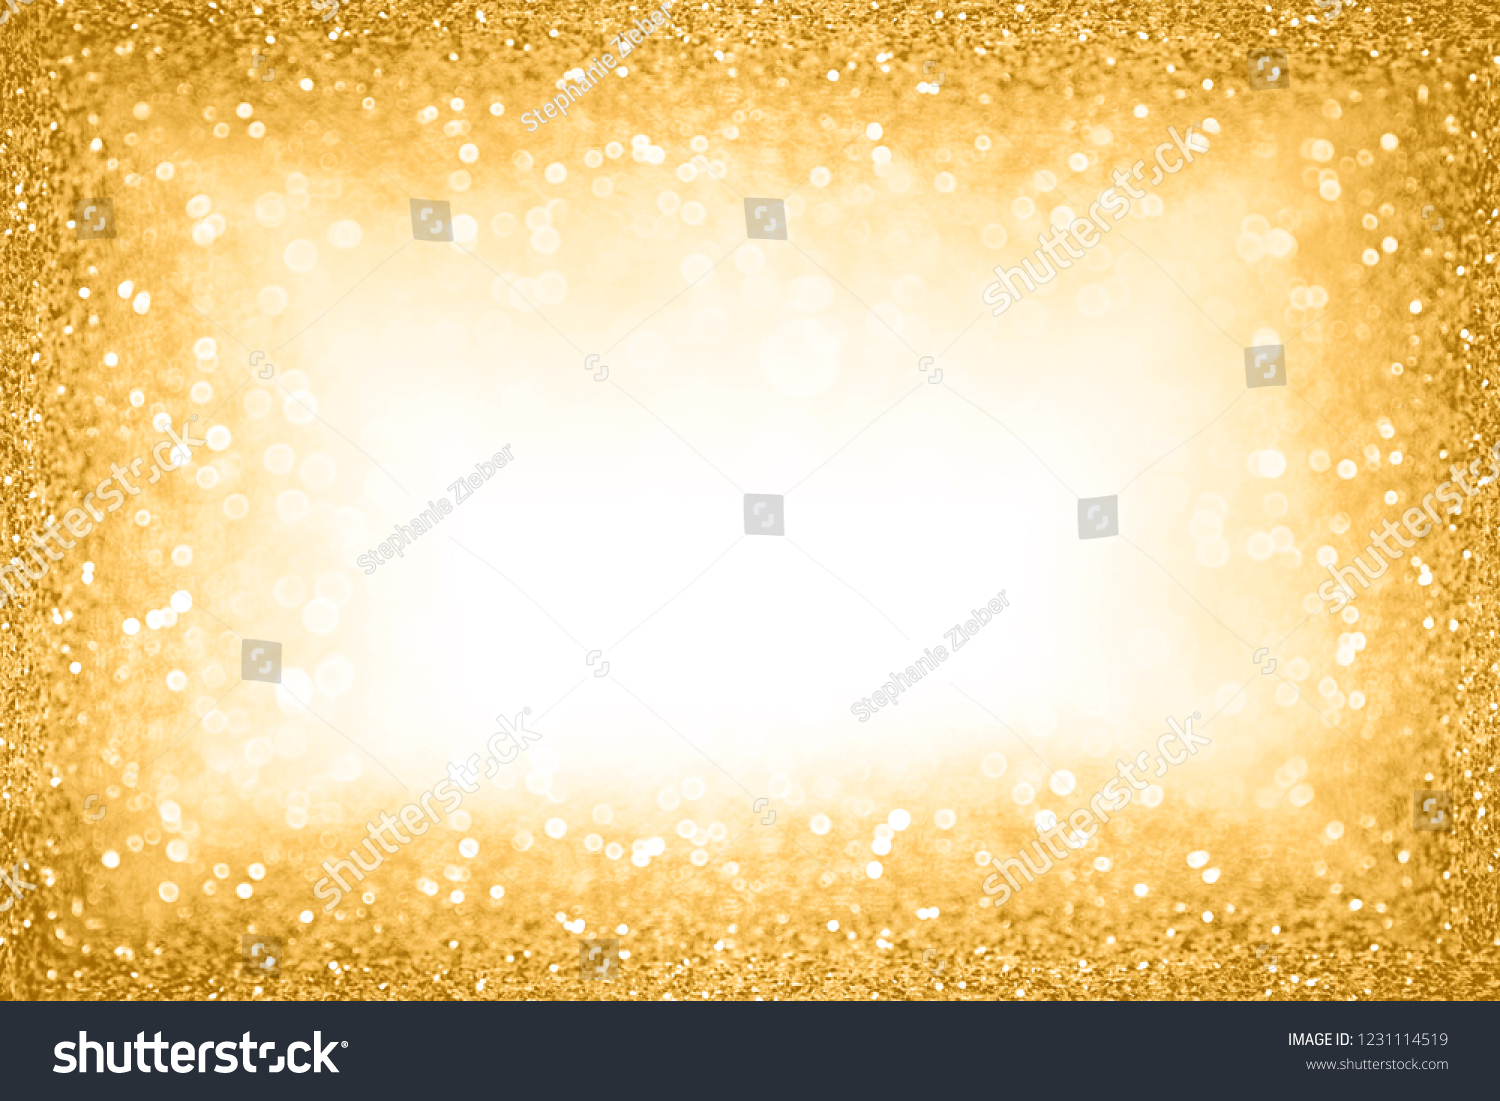 fancy glam gold glitter sparkle confetti background for golden happy birthday party invite 50th wedding